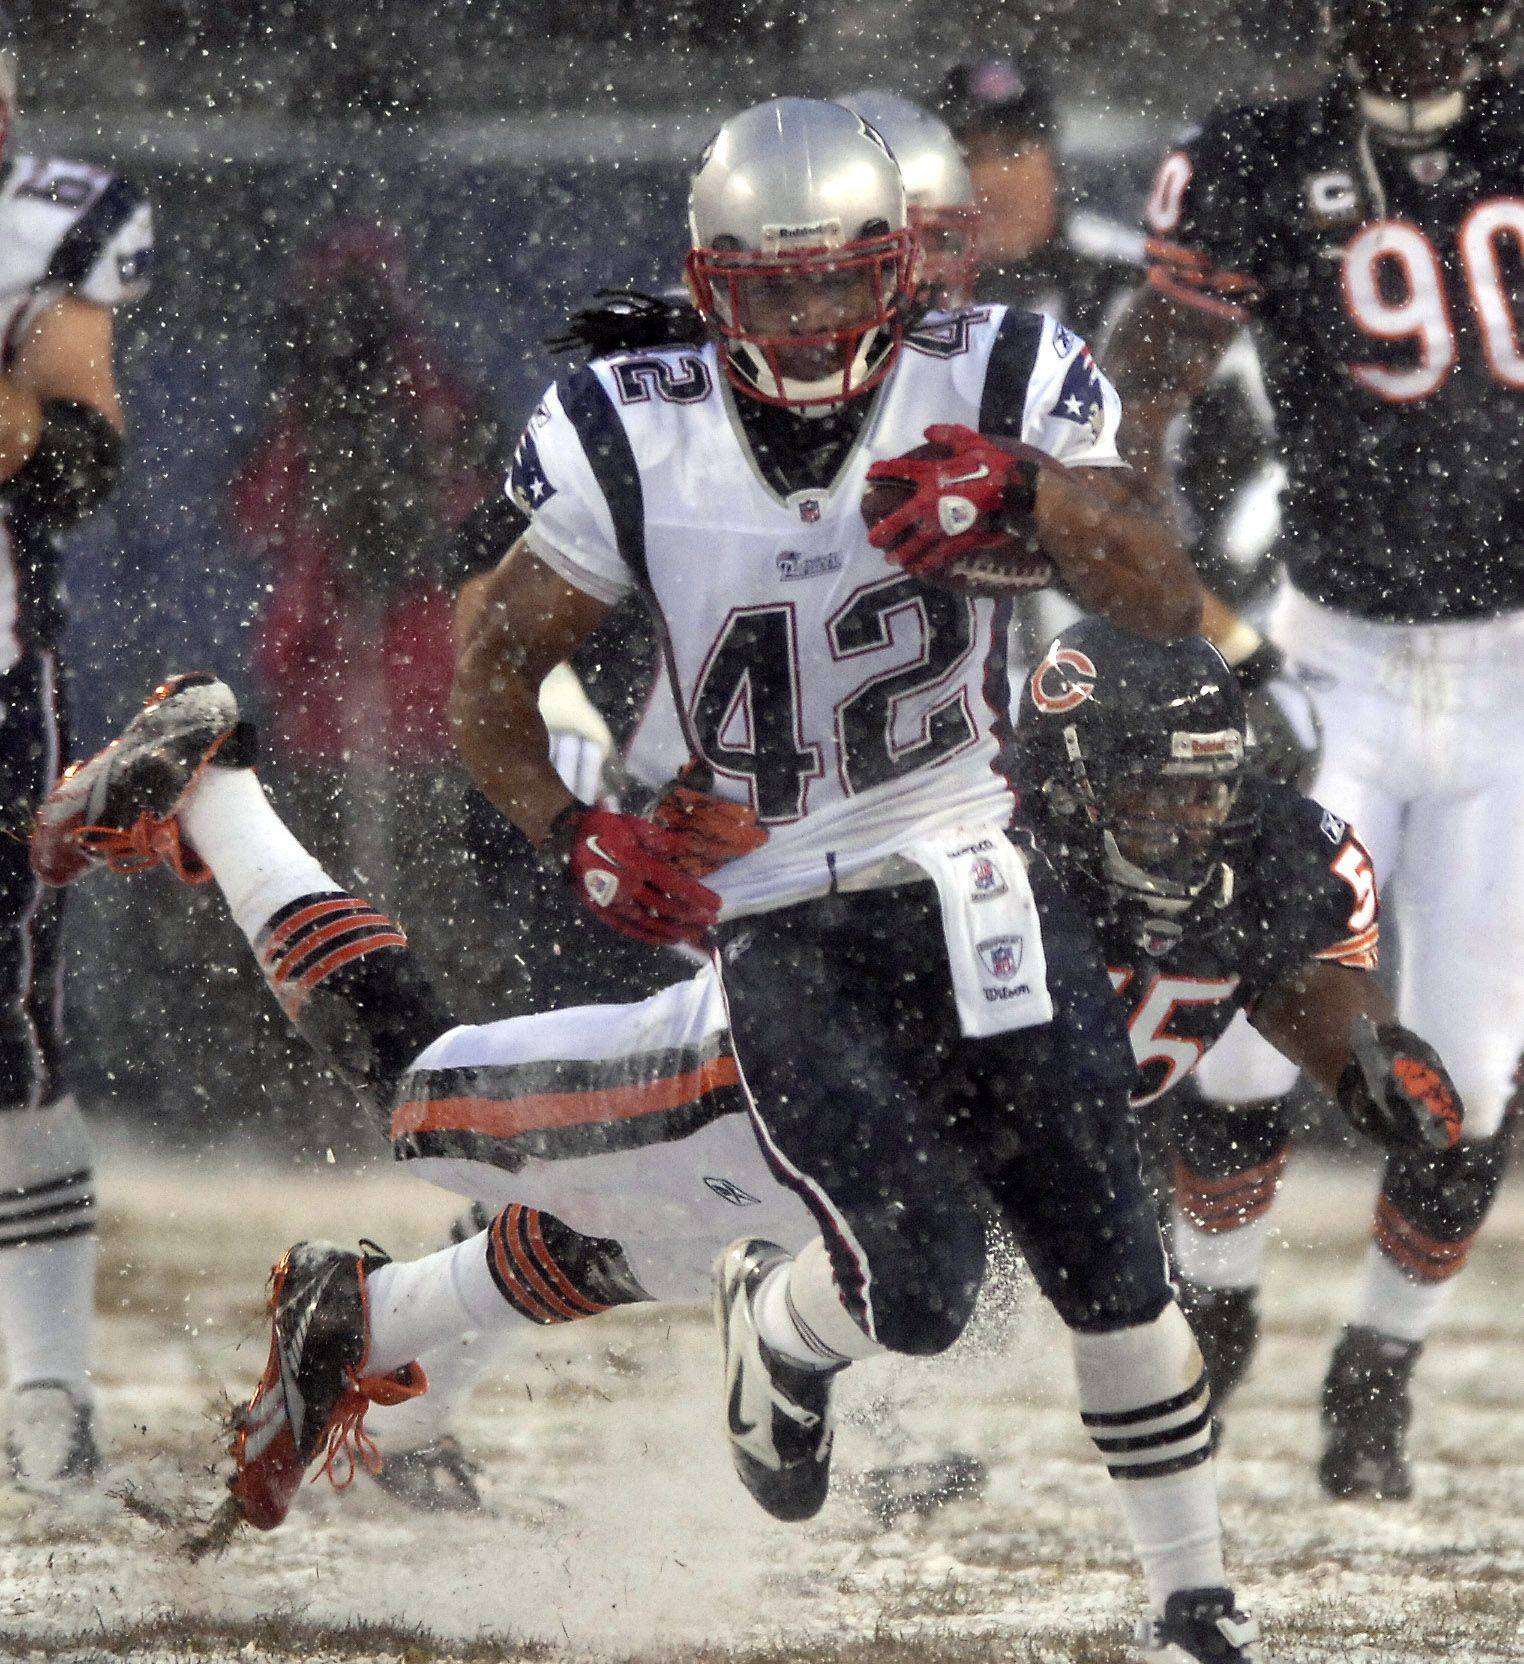 New England Patriots running back BenJarvus Green-Ellis runs past a diving Lance Briggs.